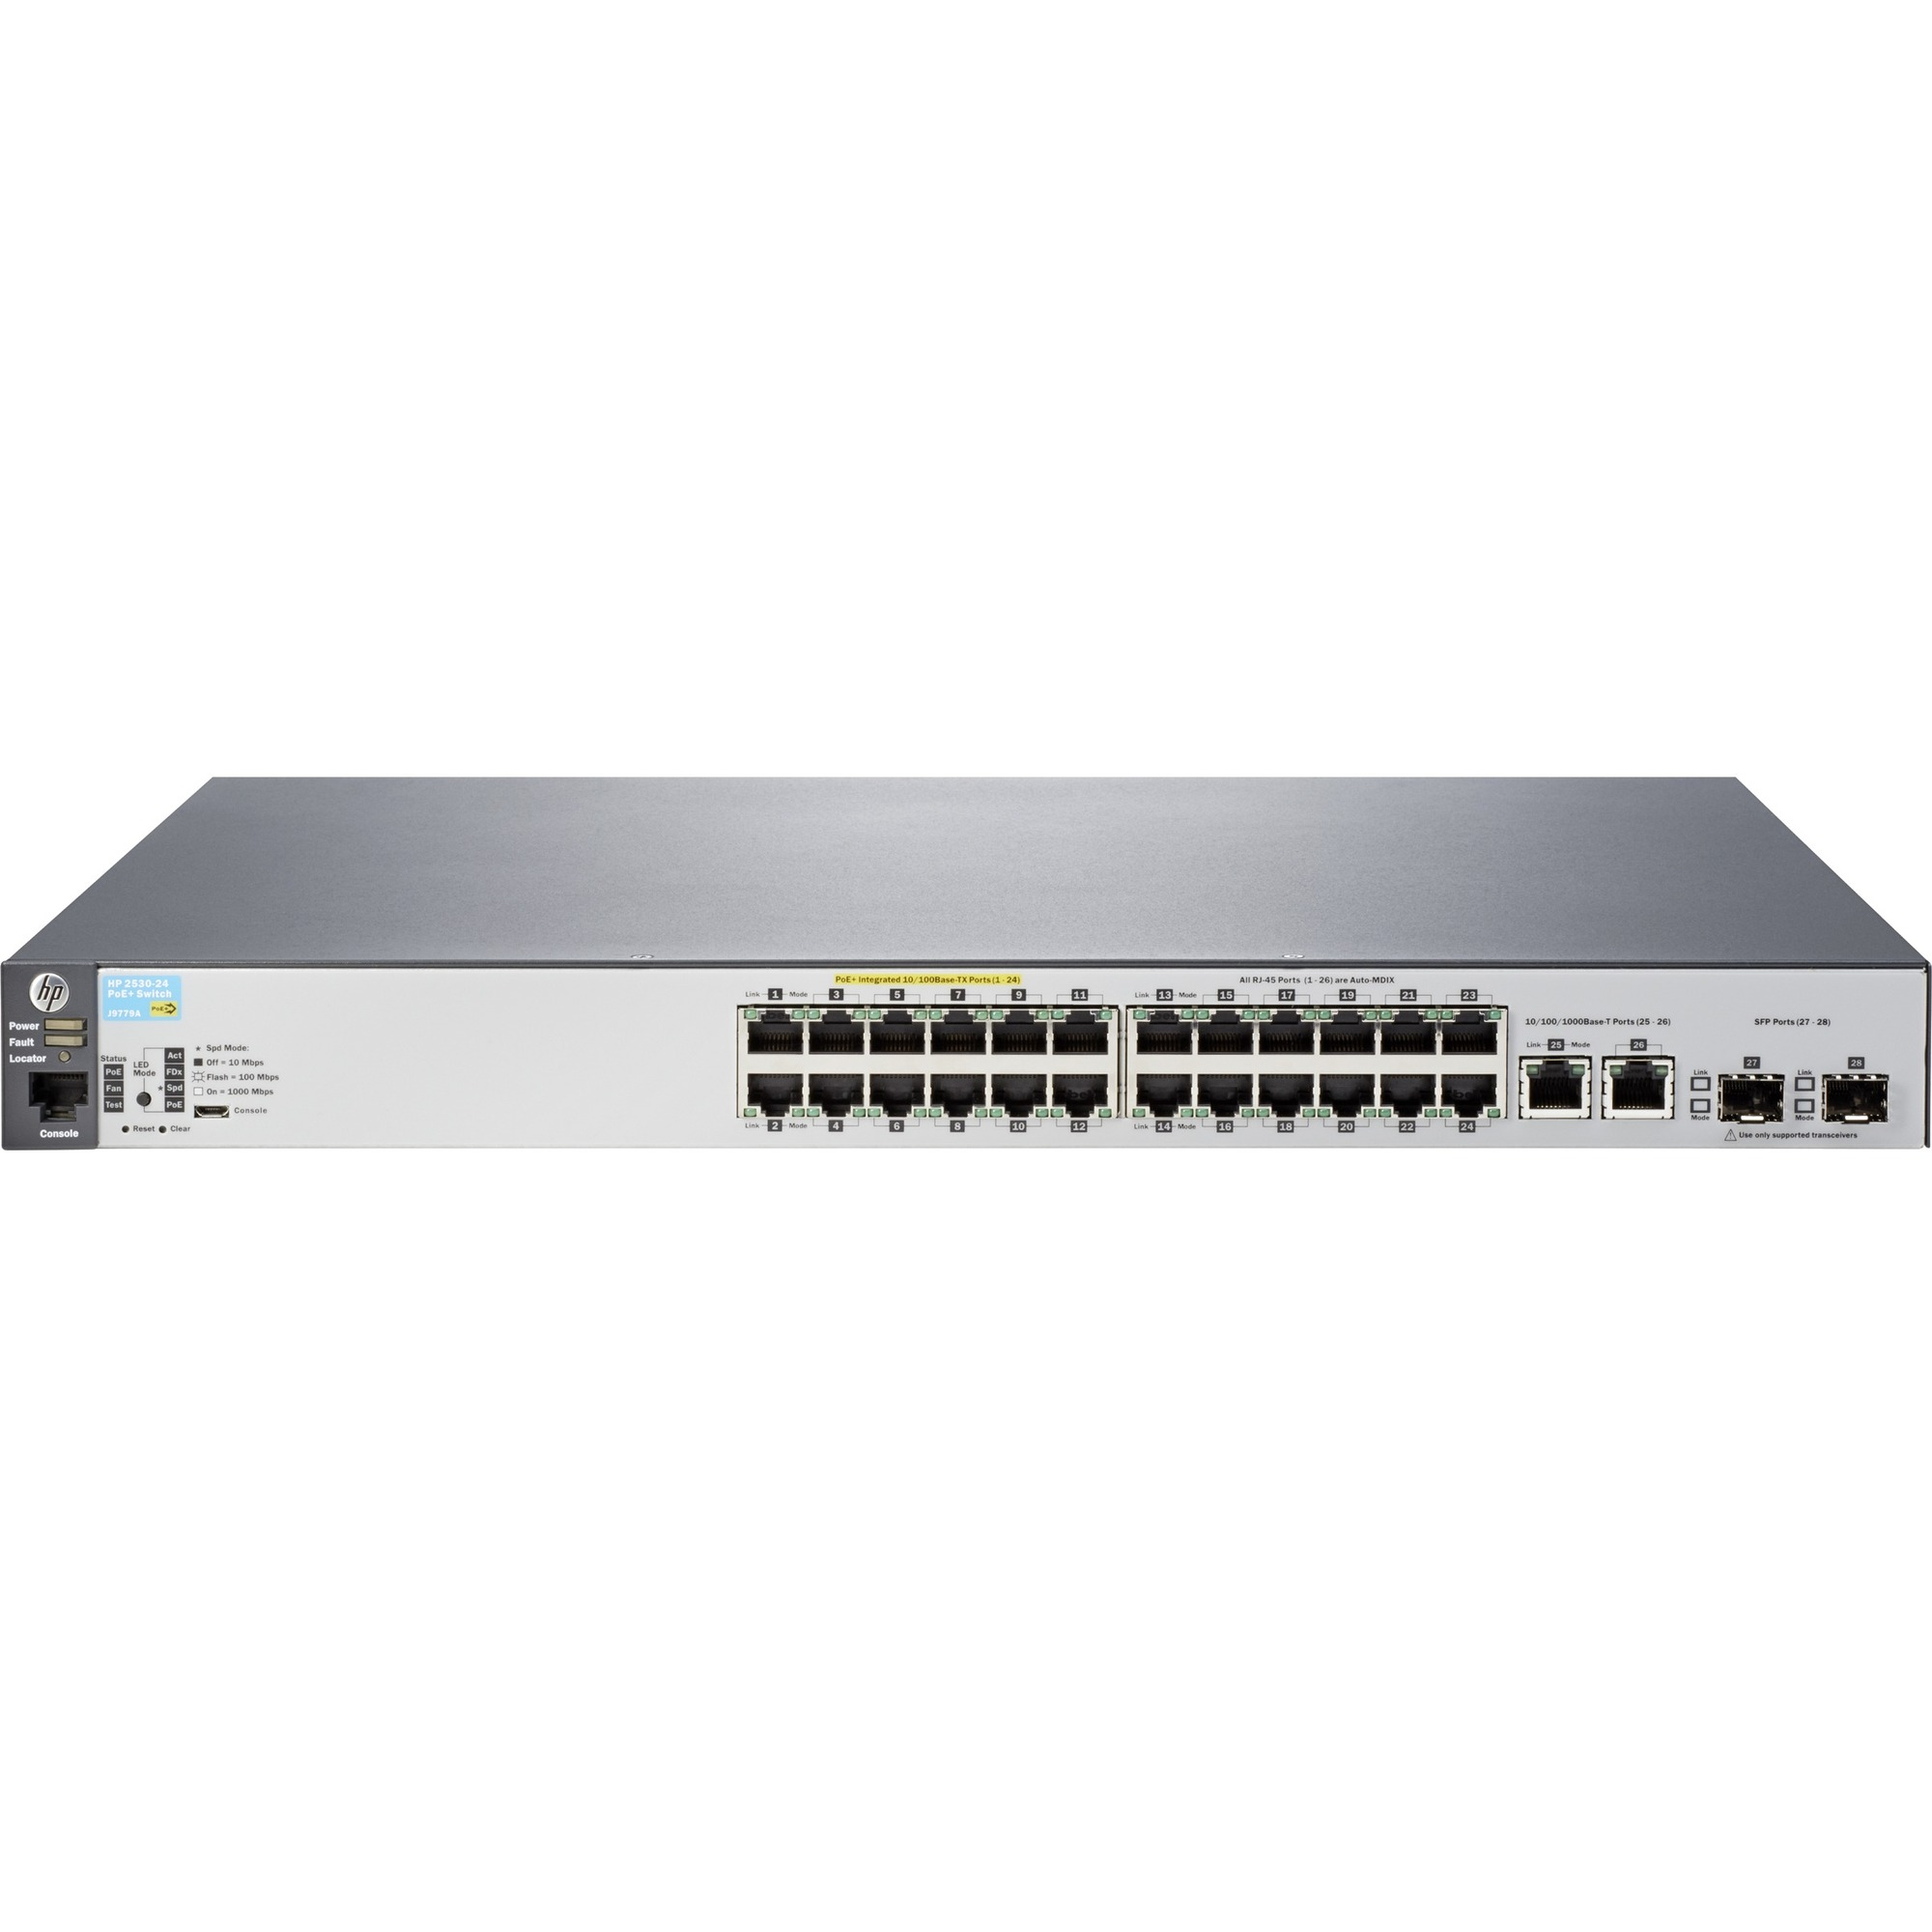 HP 2530-24-PoEplus 24 Ports Manageable Ethernet Switch